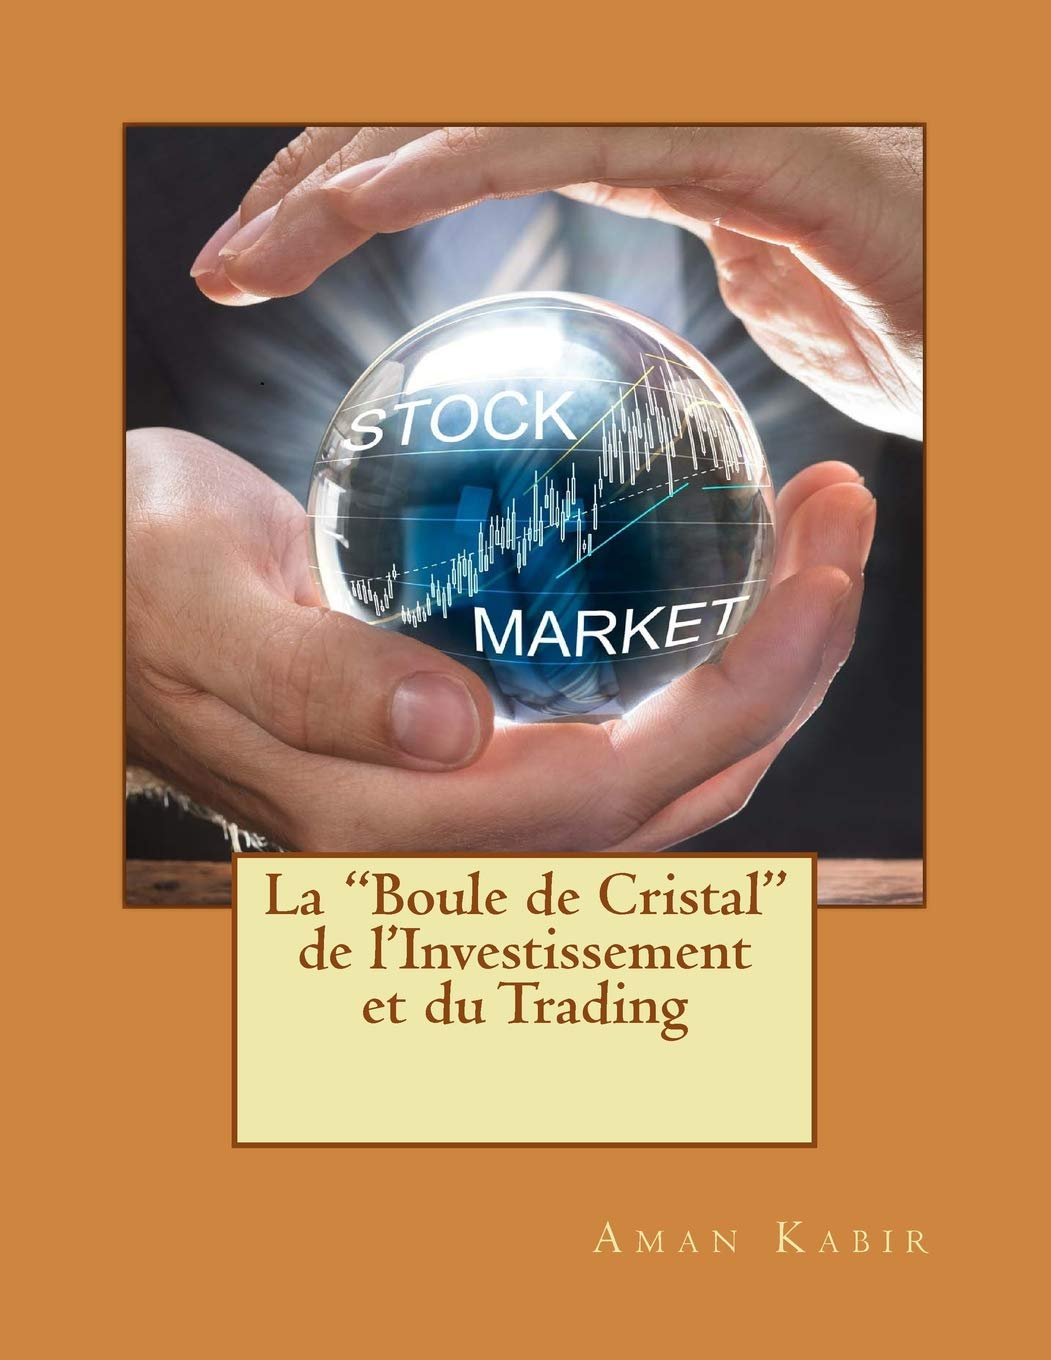 La Boule de Cristal de l'Investissement et Du Trading: Le Saint Graal de la Bourse Broché – 1 mars 2018 Mr. Aman Kabir 1986125491 EDUCATION / Finance